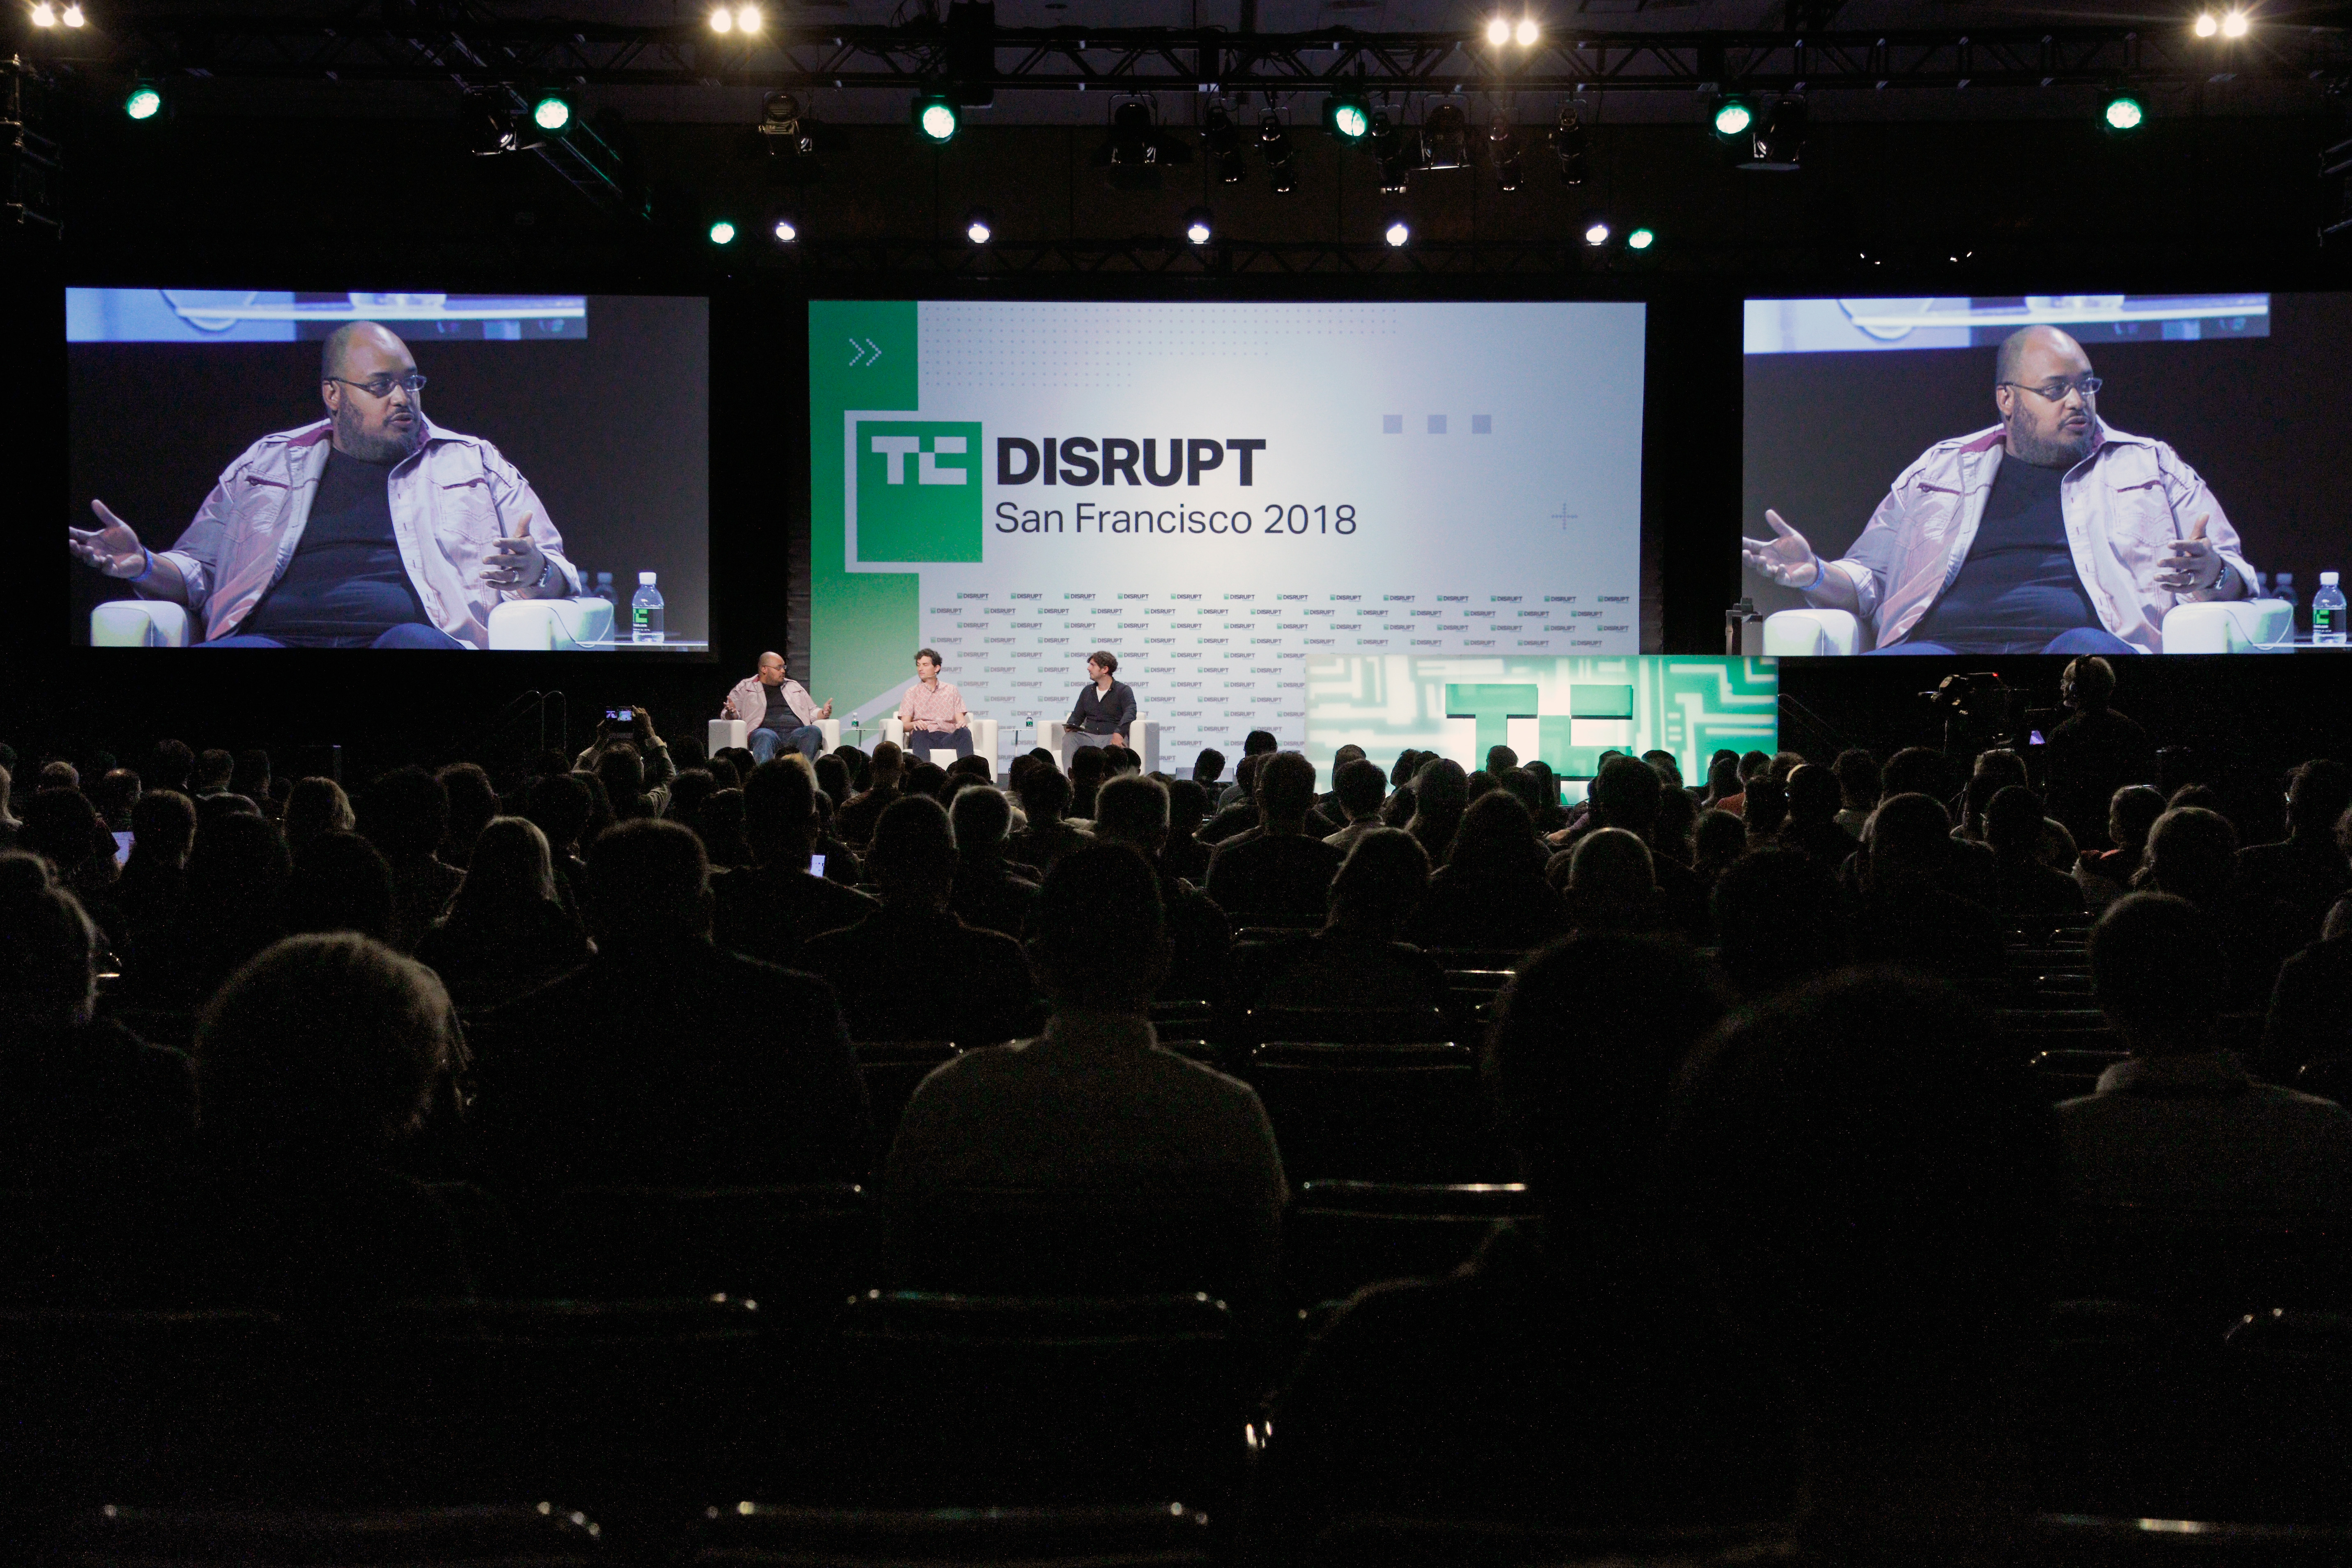 To fund Y Combinator's top startups, VCs scoop them before Demo Day